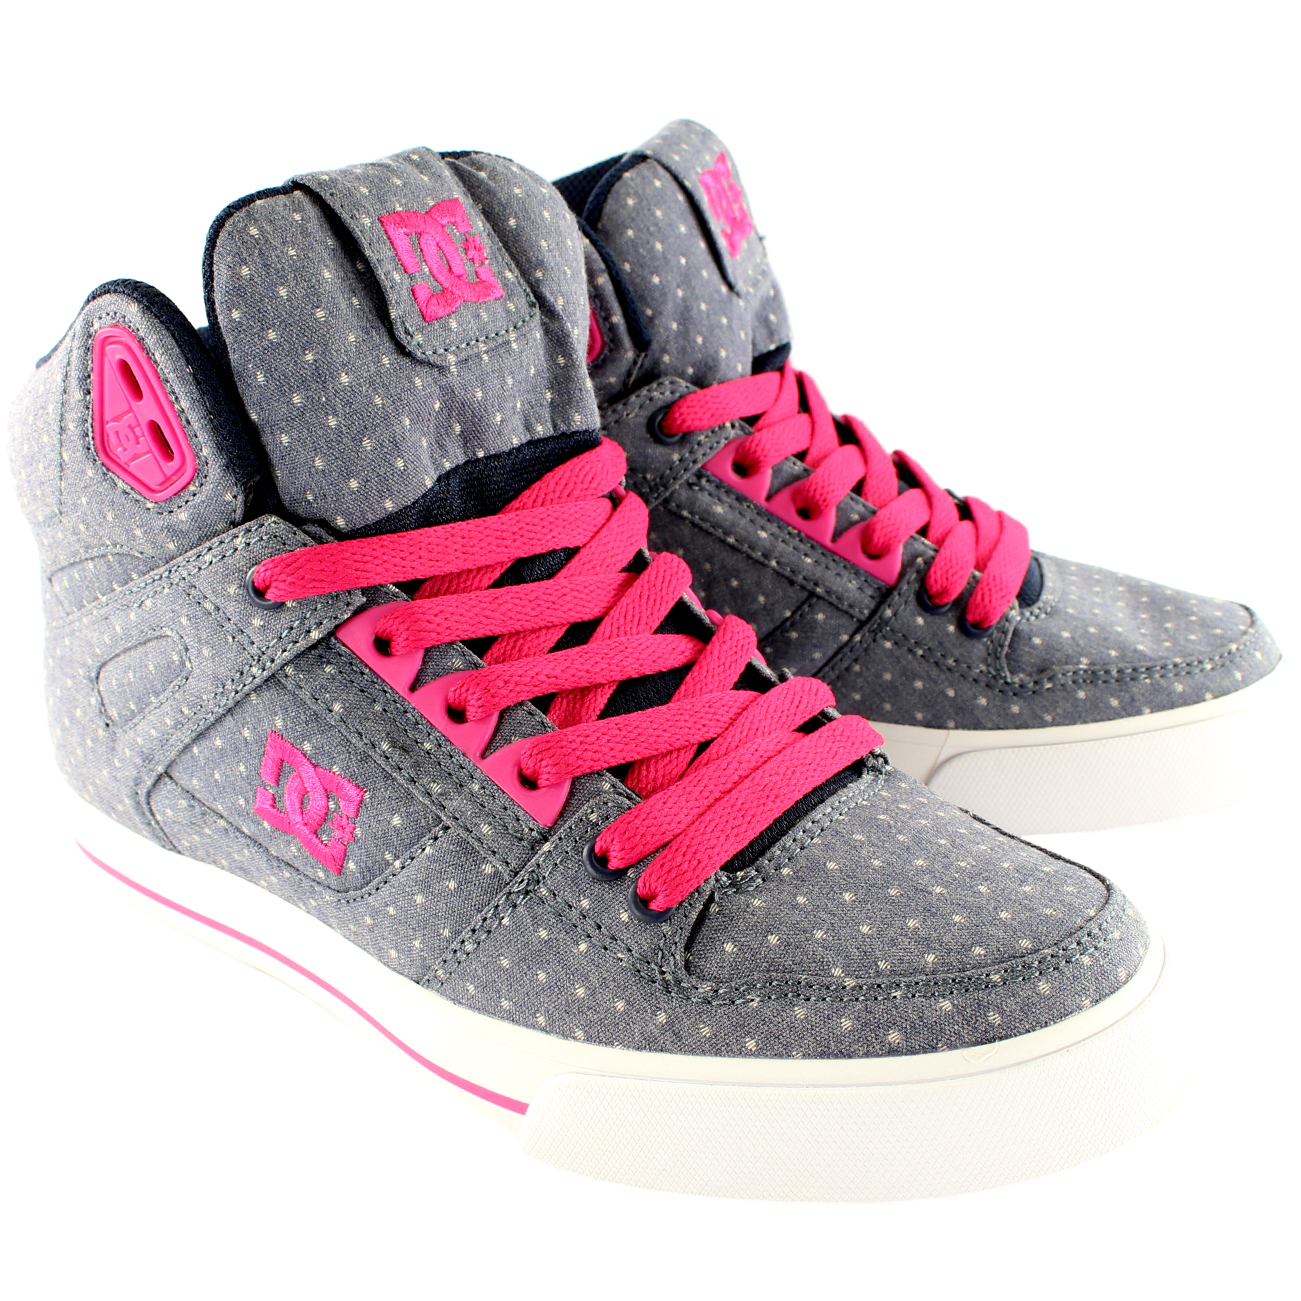 DC Shoes Spartan High TX High Top Skate Shoes